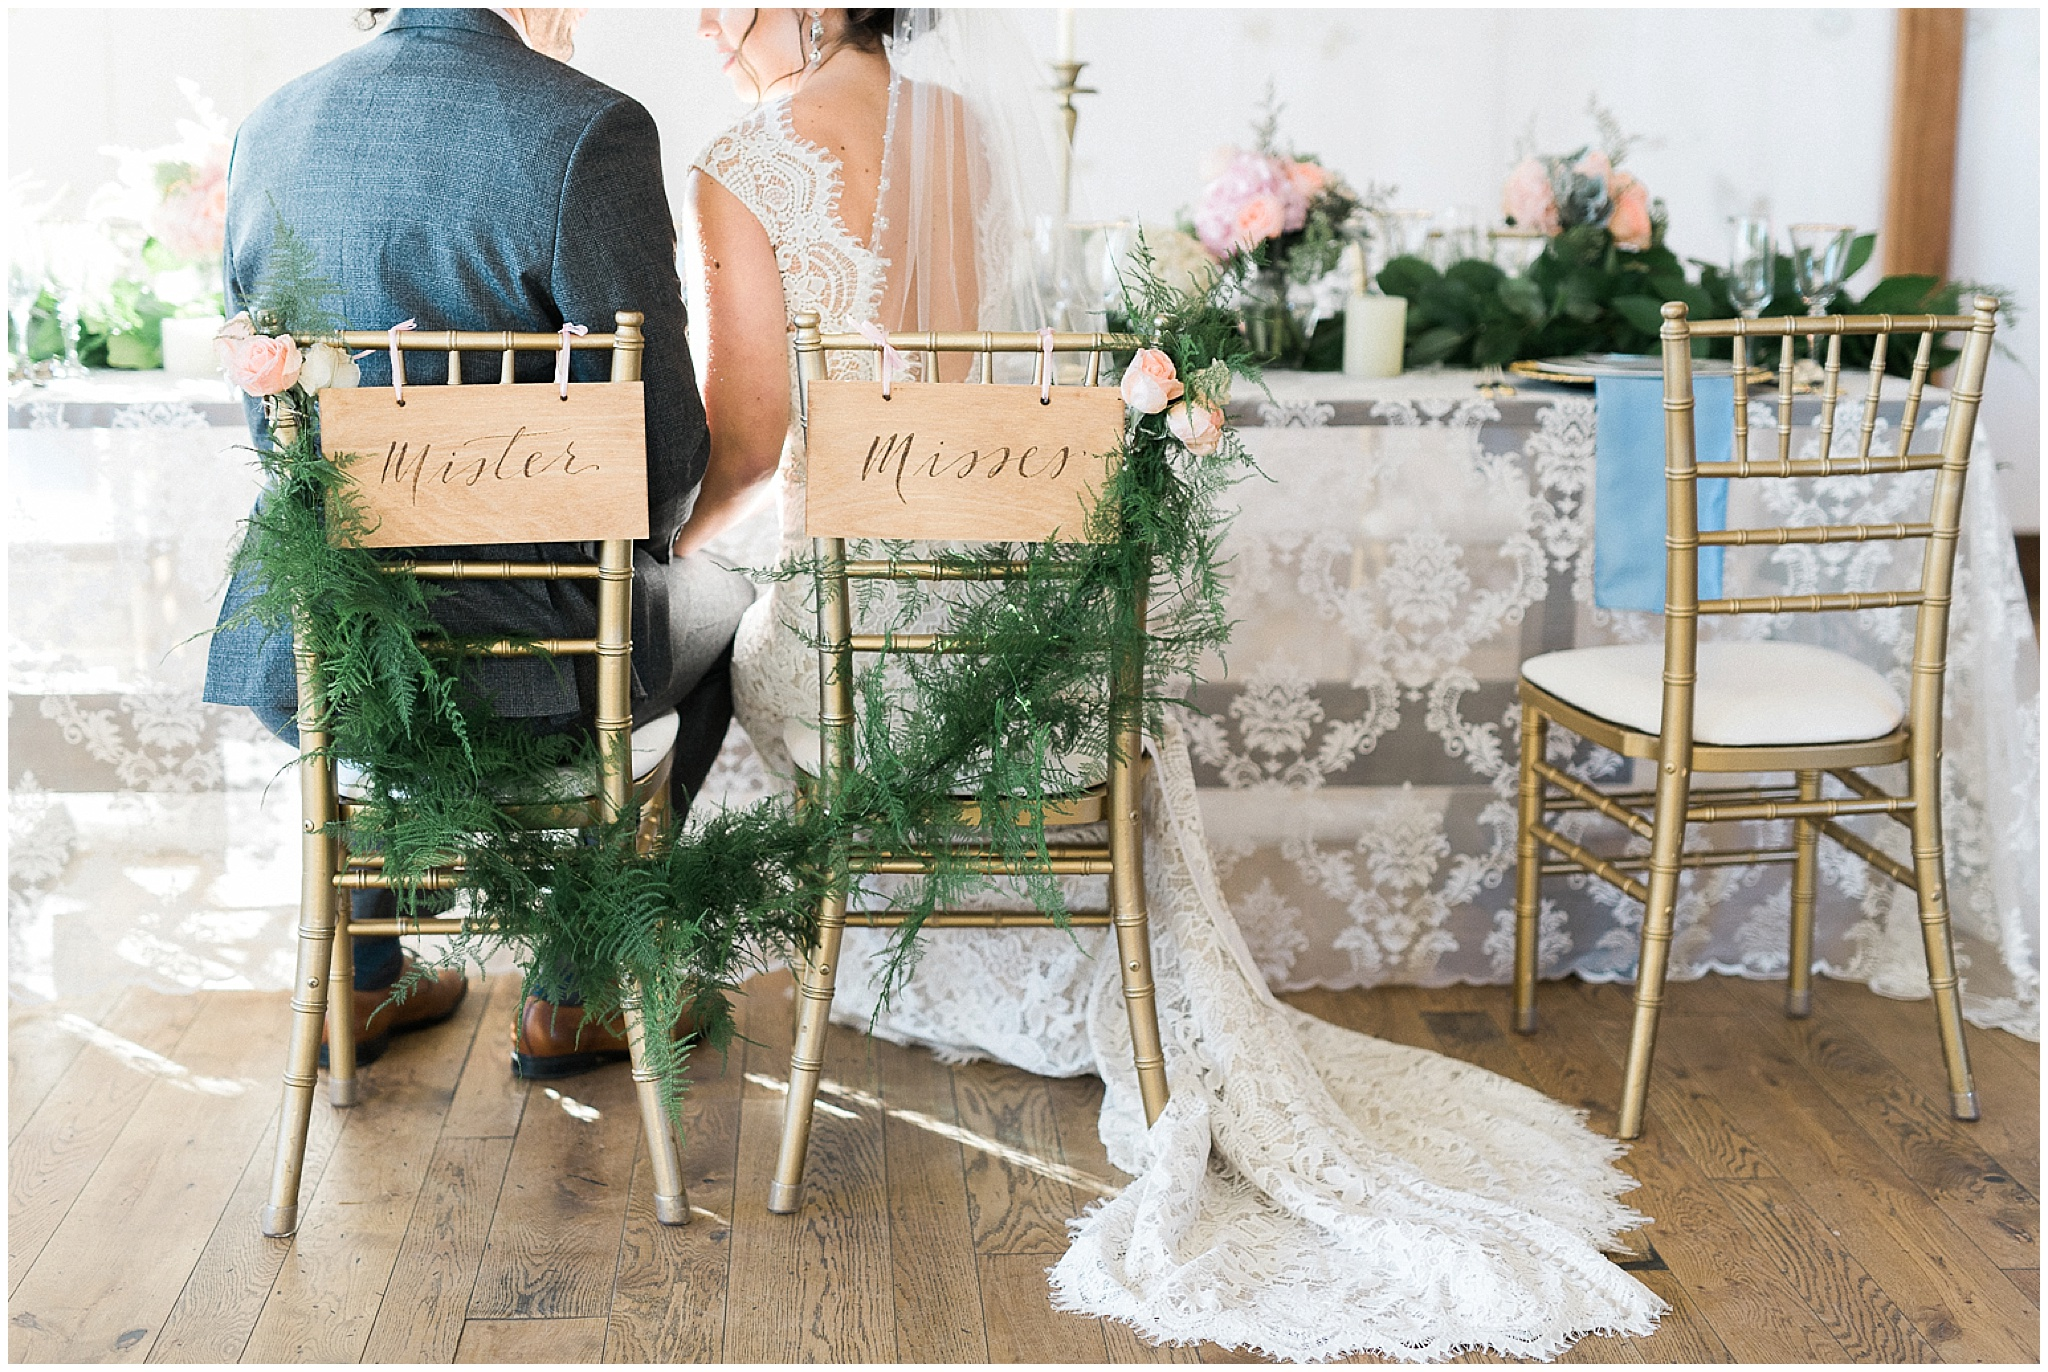 Earth to Table Farm Wedding Inspiration by Jenn Kavanagh Photography